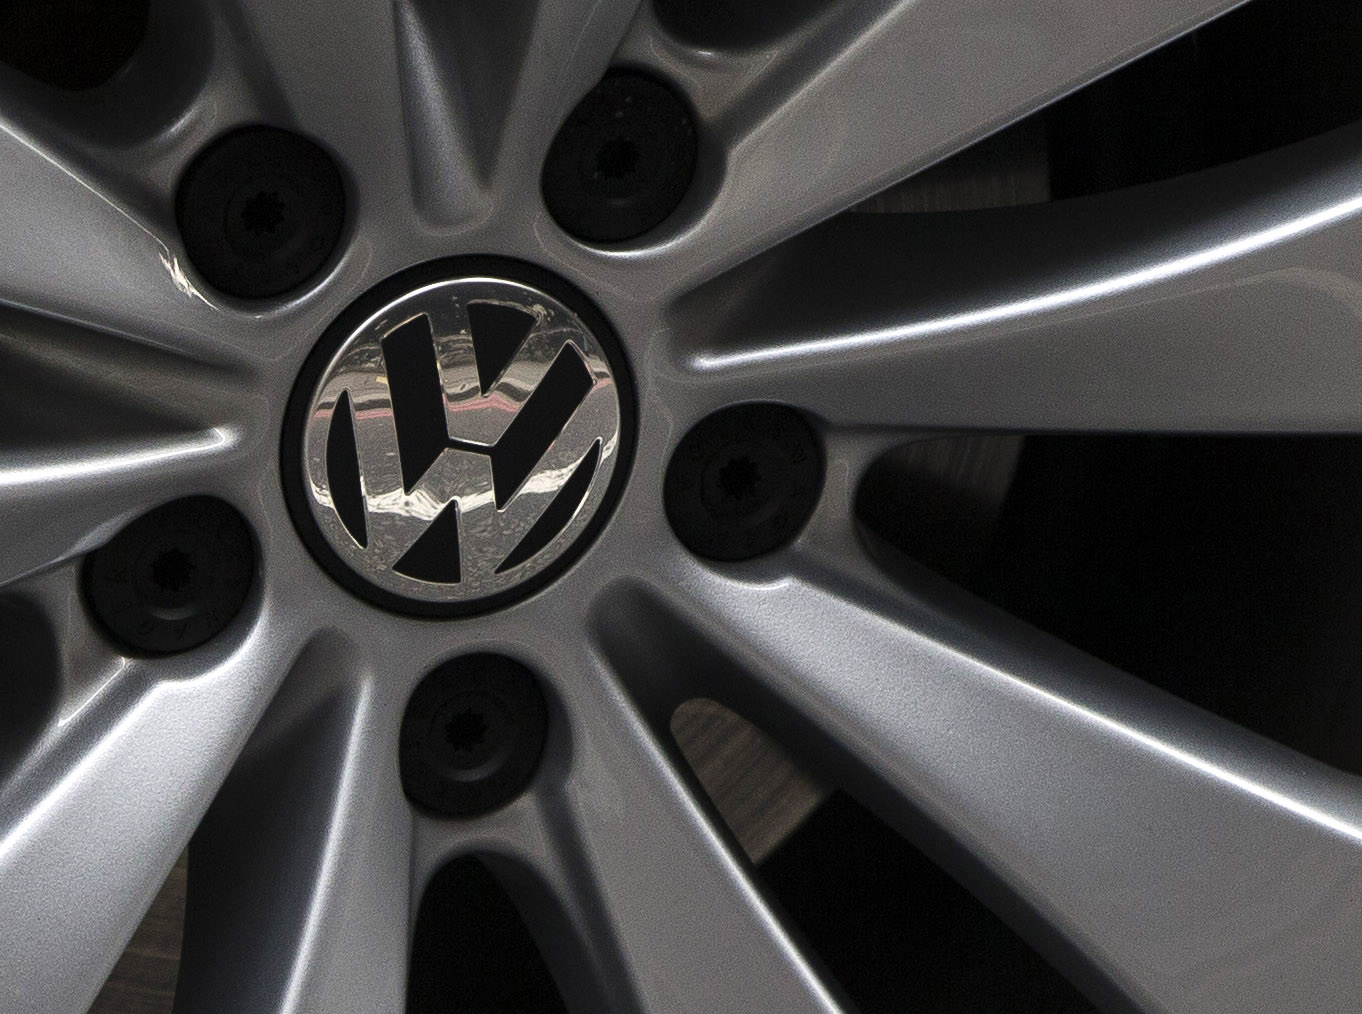 web_photo_VW_logo_230915